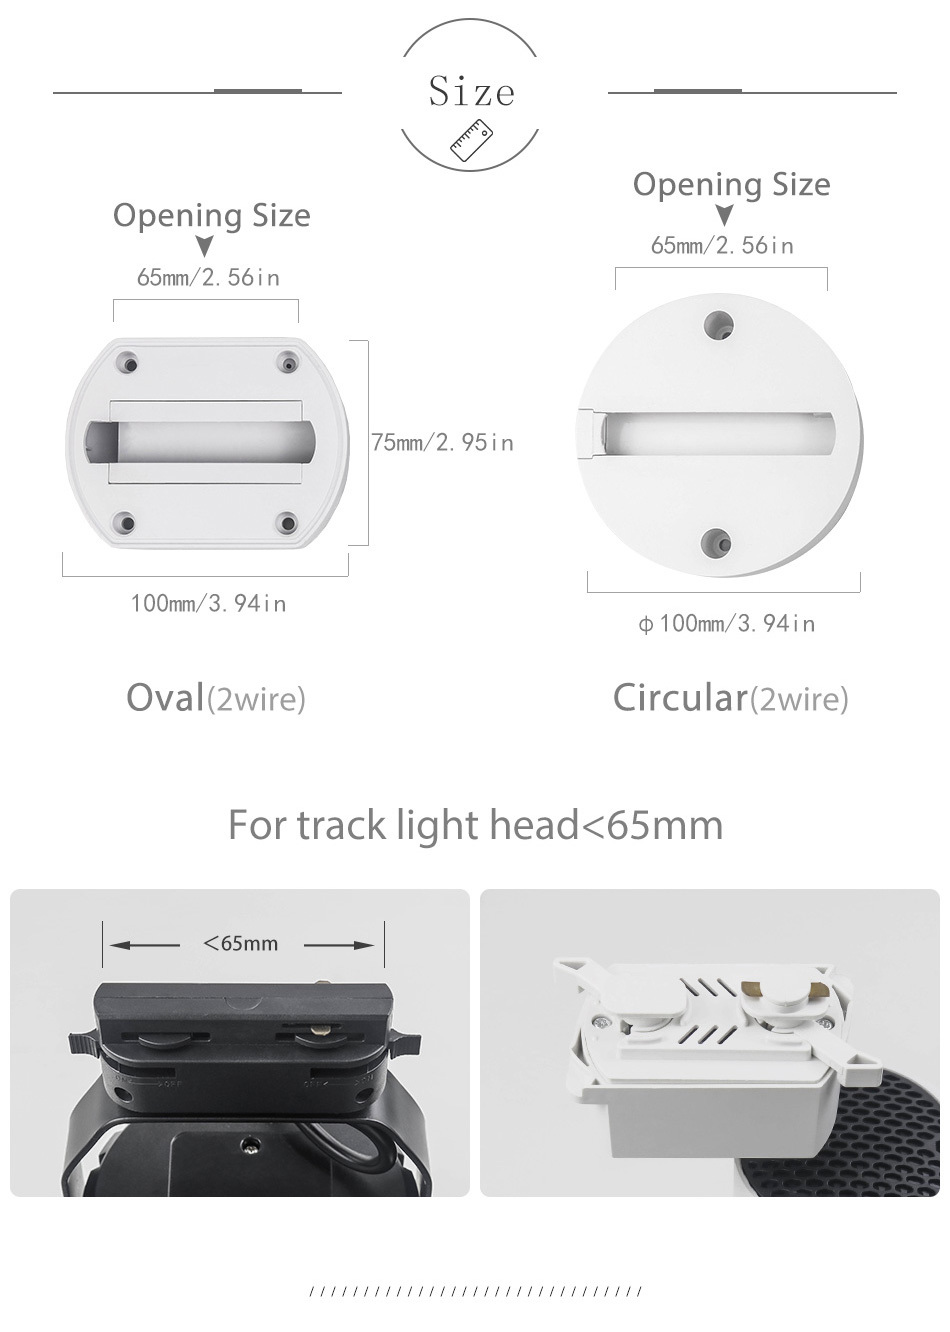 New Track Lights Box Rail Lighting Connector Accessories Track lamp Ceiling Box  2 Wire 3 Wire Fixtures LED Spot light Fitting (11)